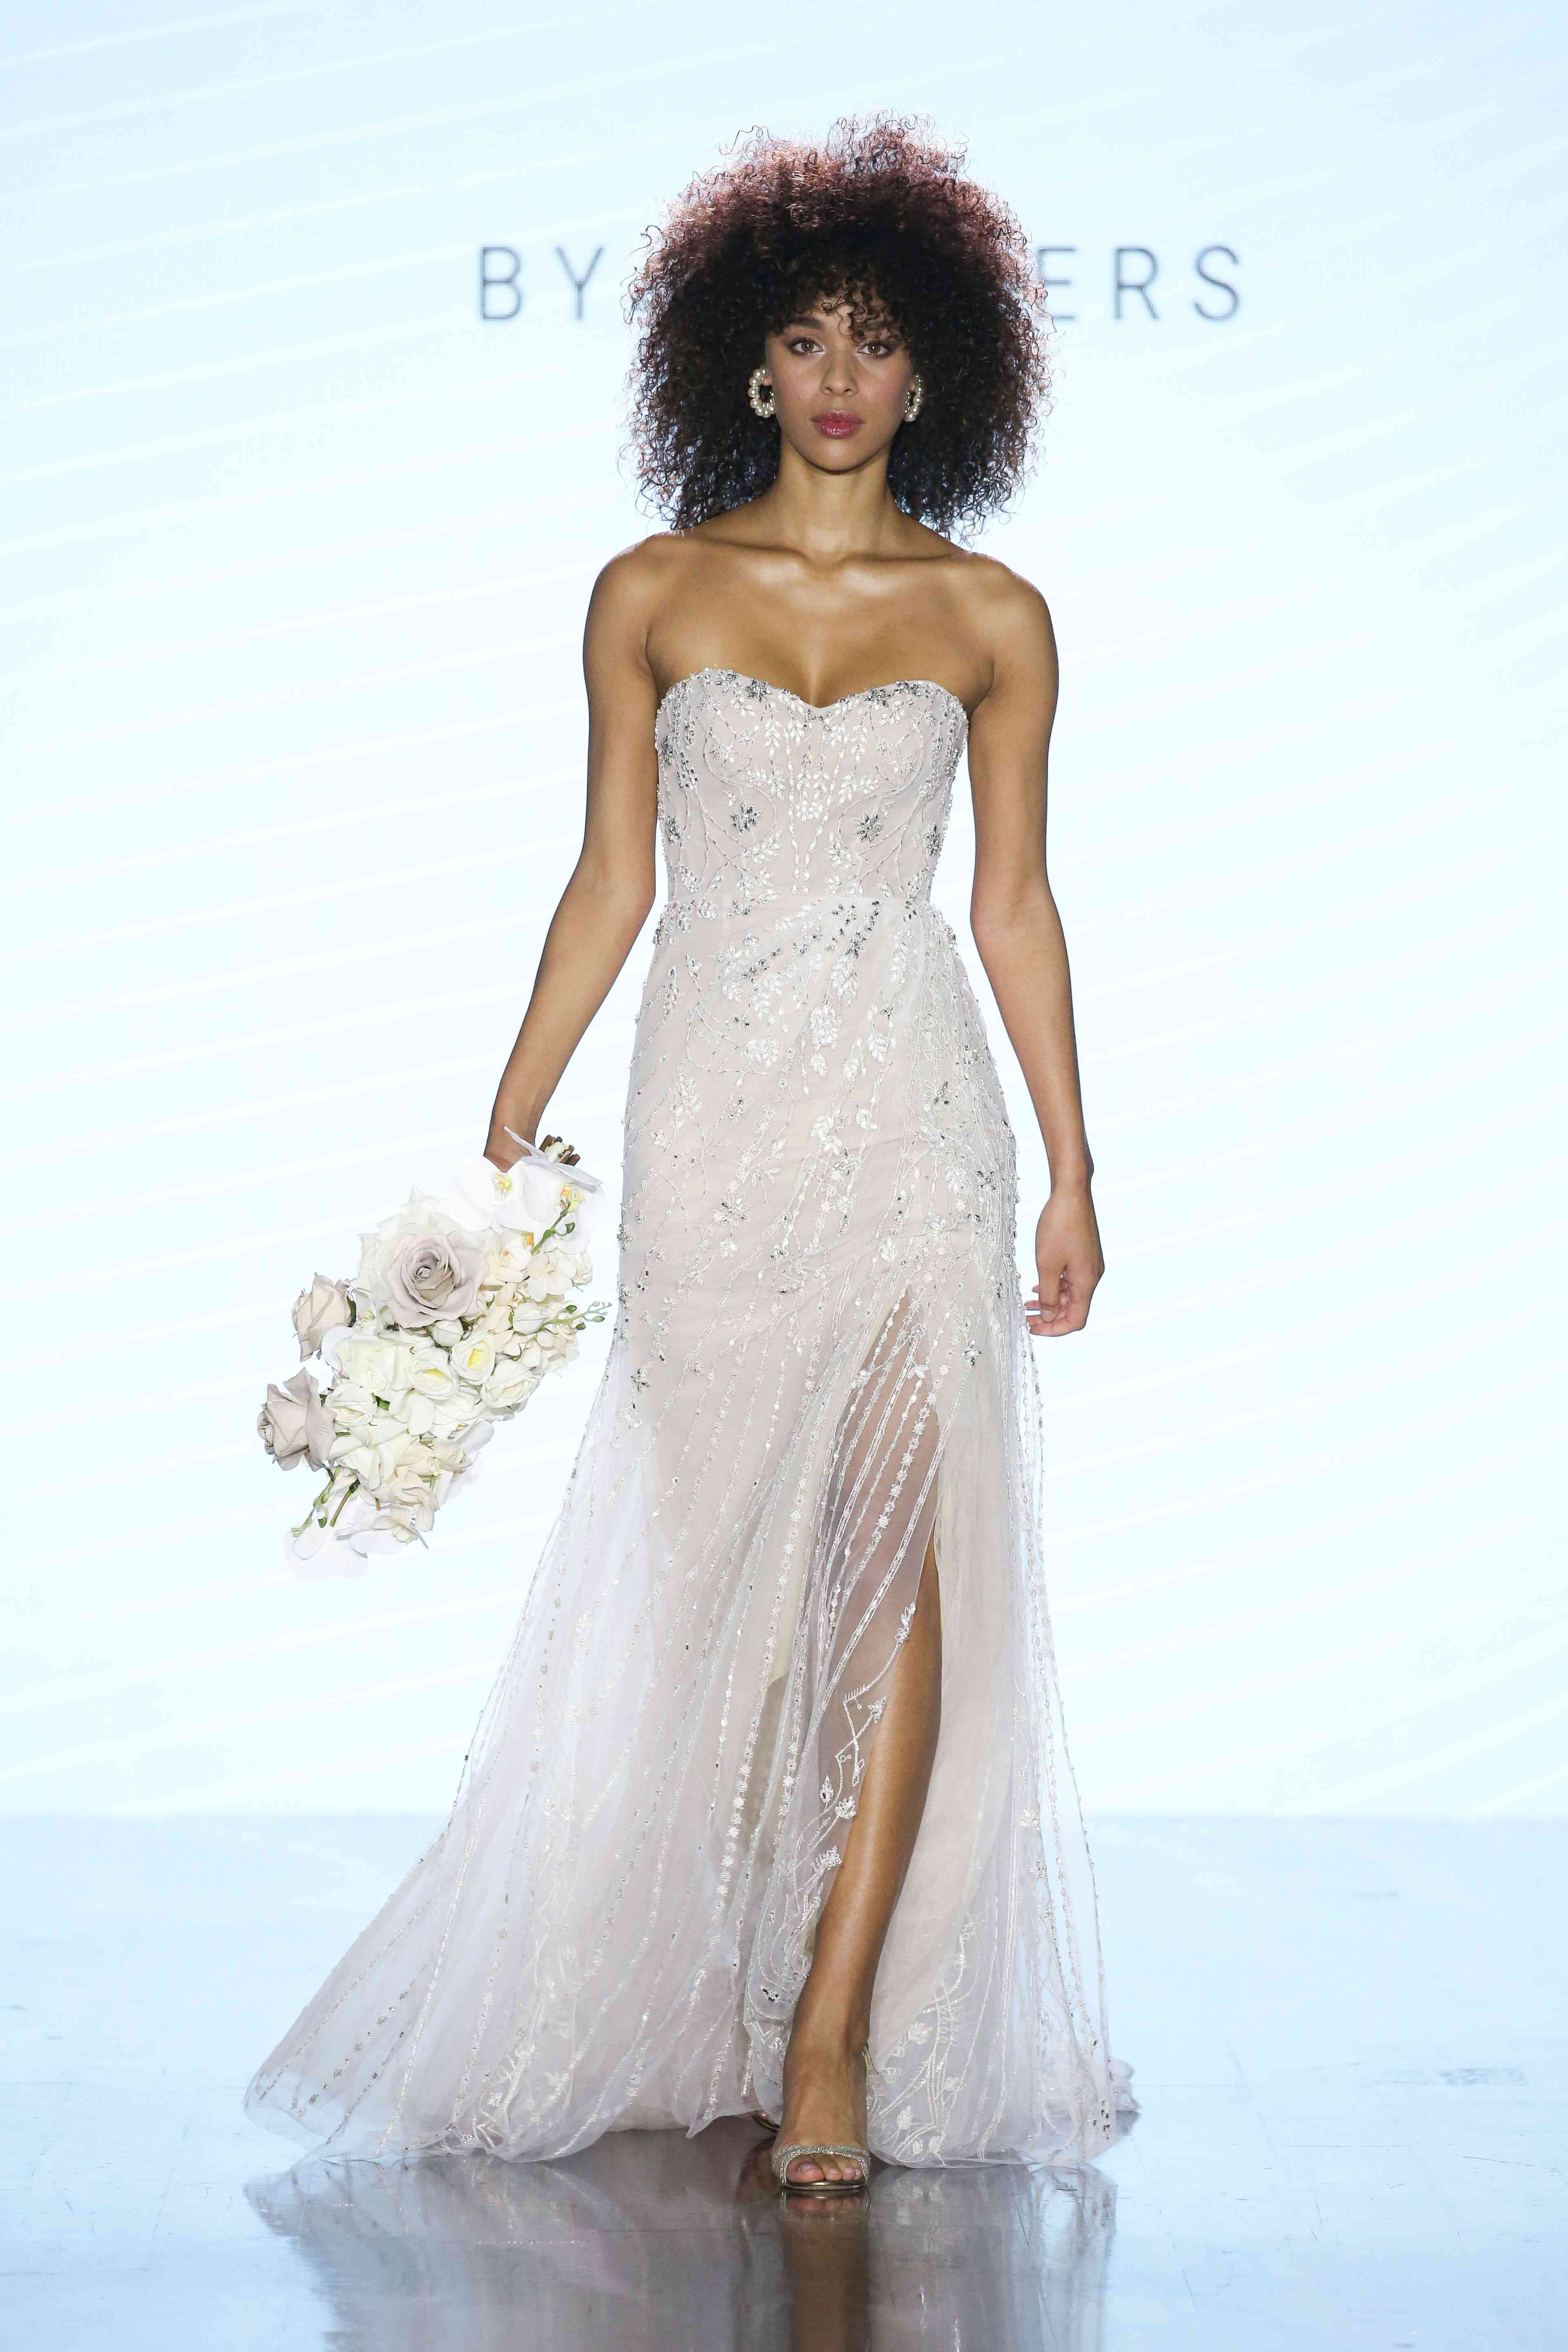 Model in strapless sweetheart wedding gown with allover silver beading and a front slit